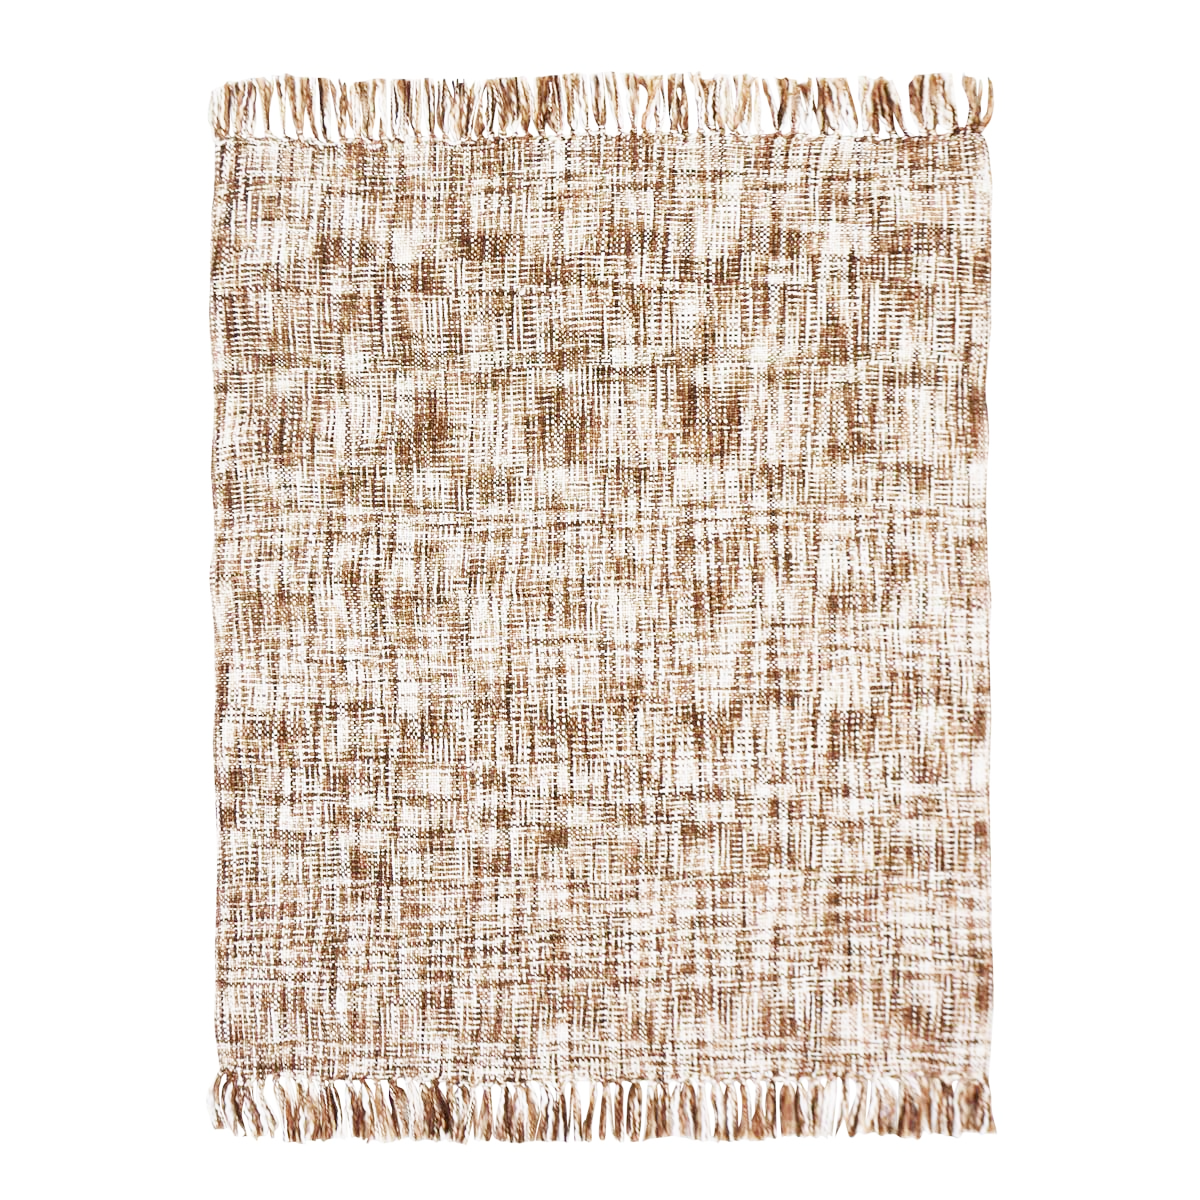 Journeyman Acrylic Woven Throw